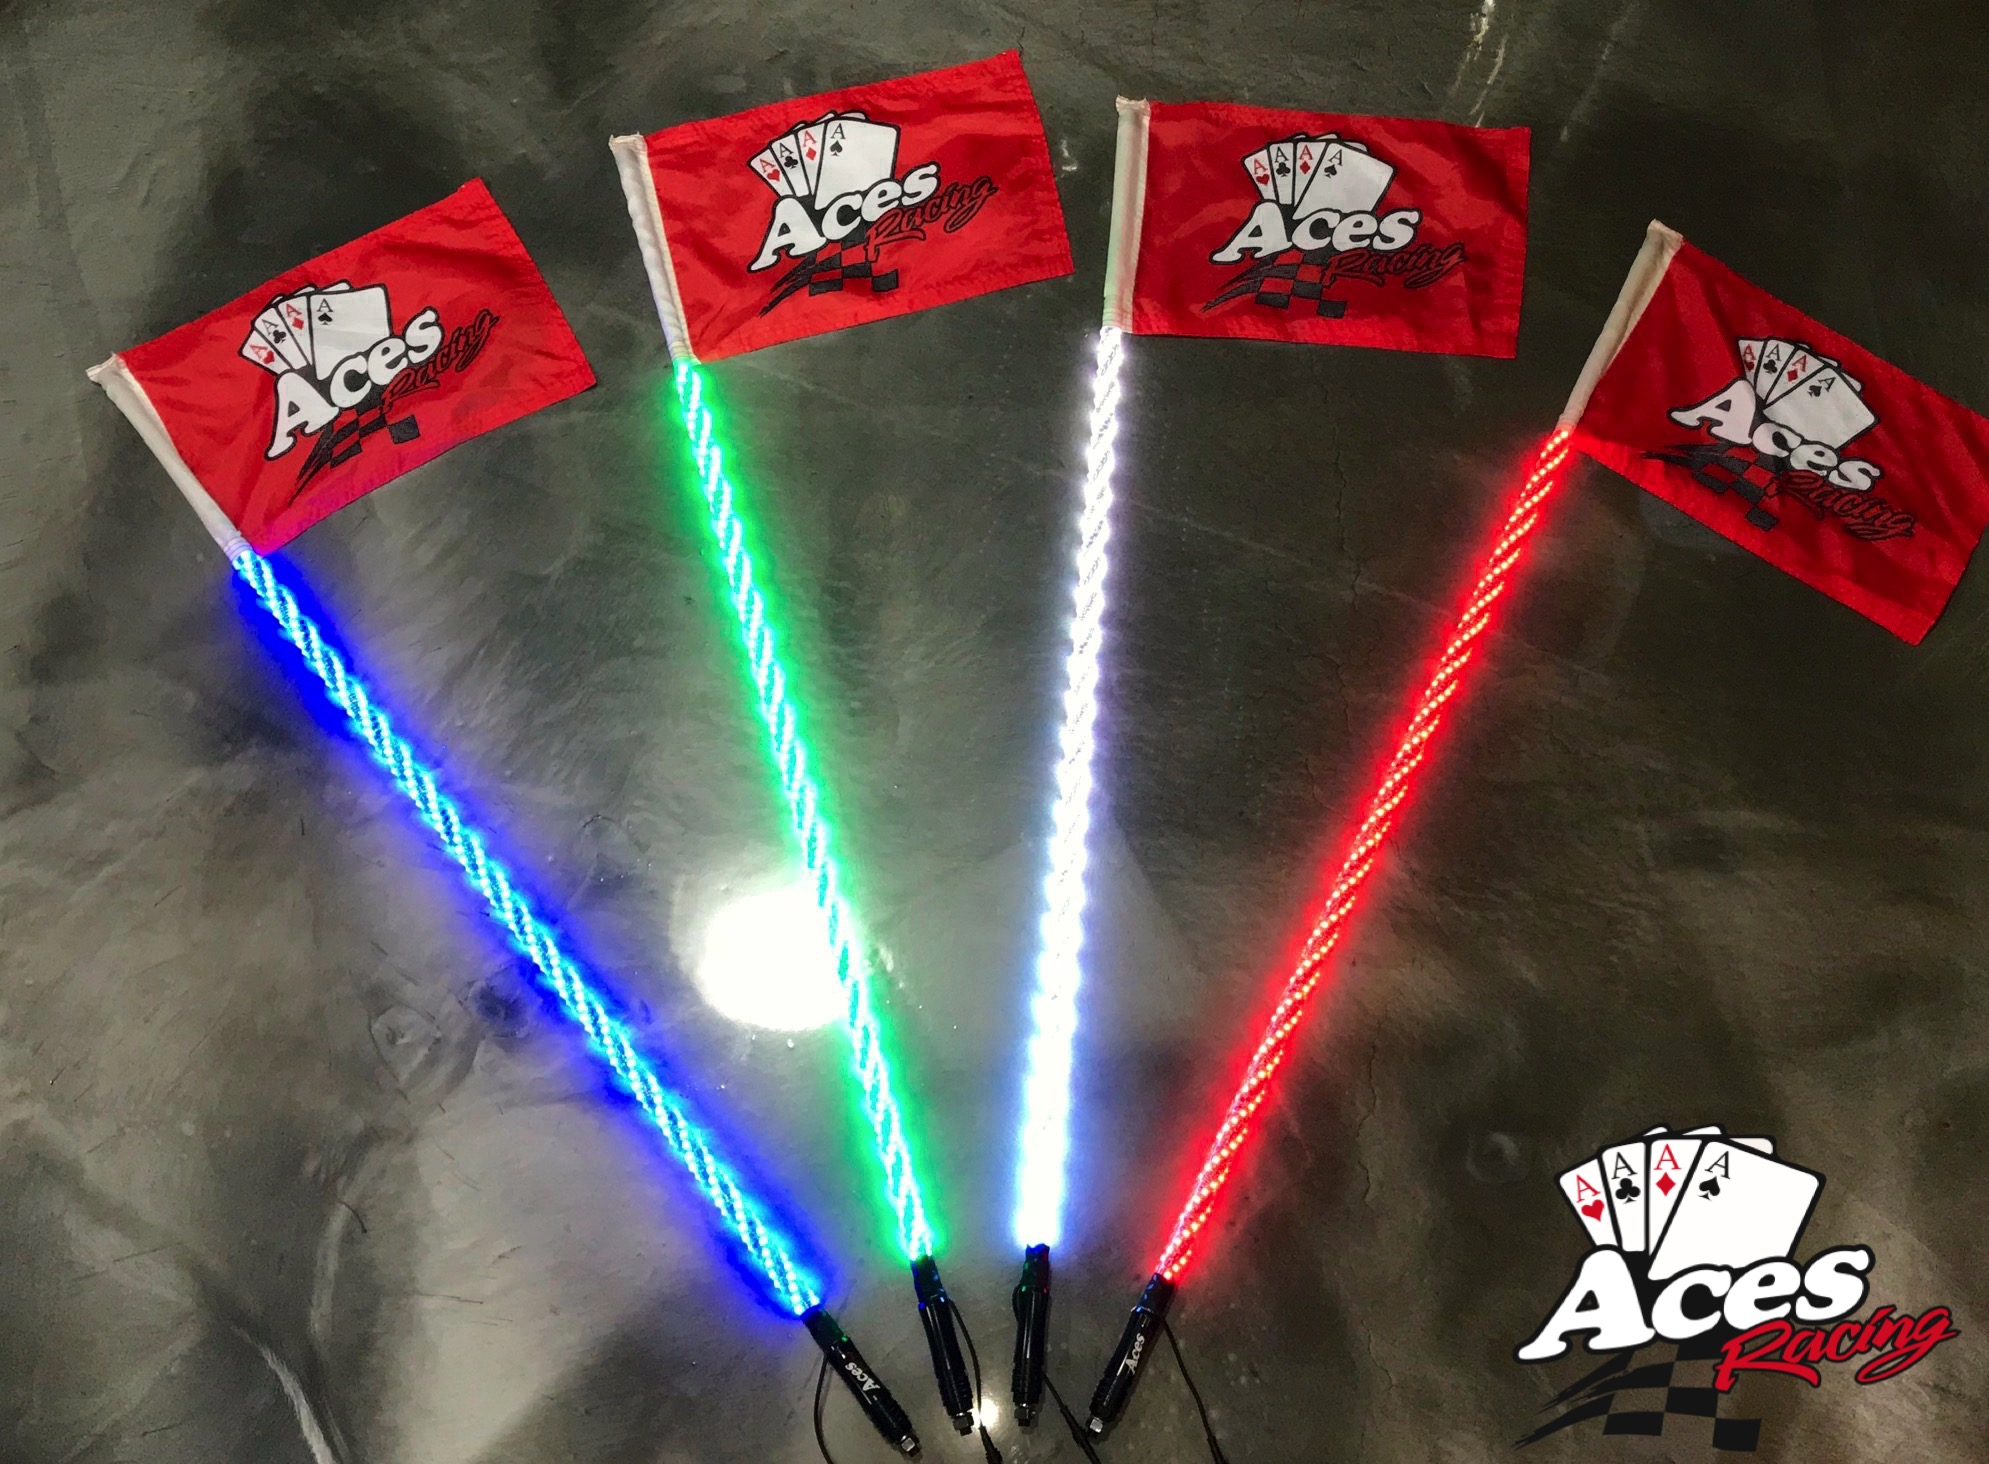 4ft Deluxe Style Spiral Lighted LED Whip 400 Color Combinations /& Aces Flag